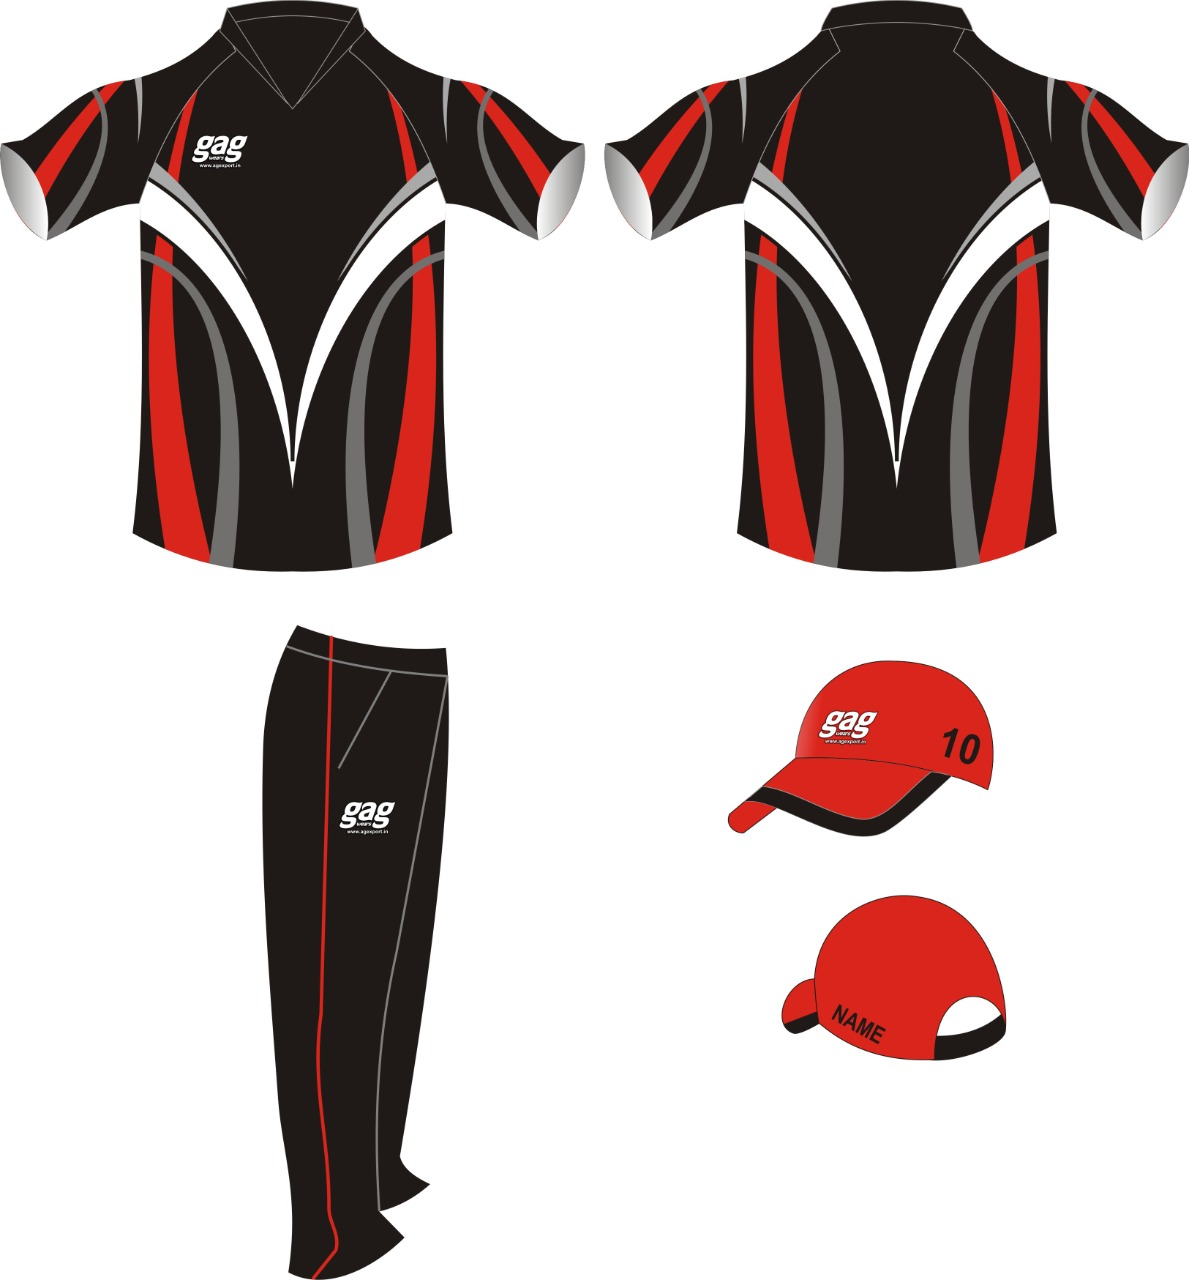 Mens Cricket Uniform Manufacturers in Jalandhar in Bahrain